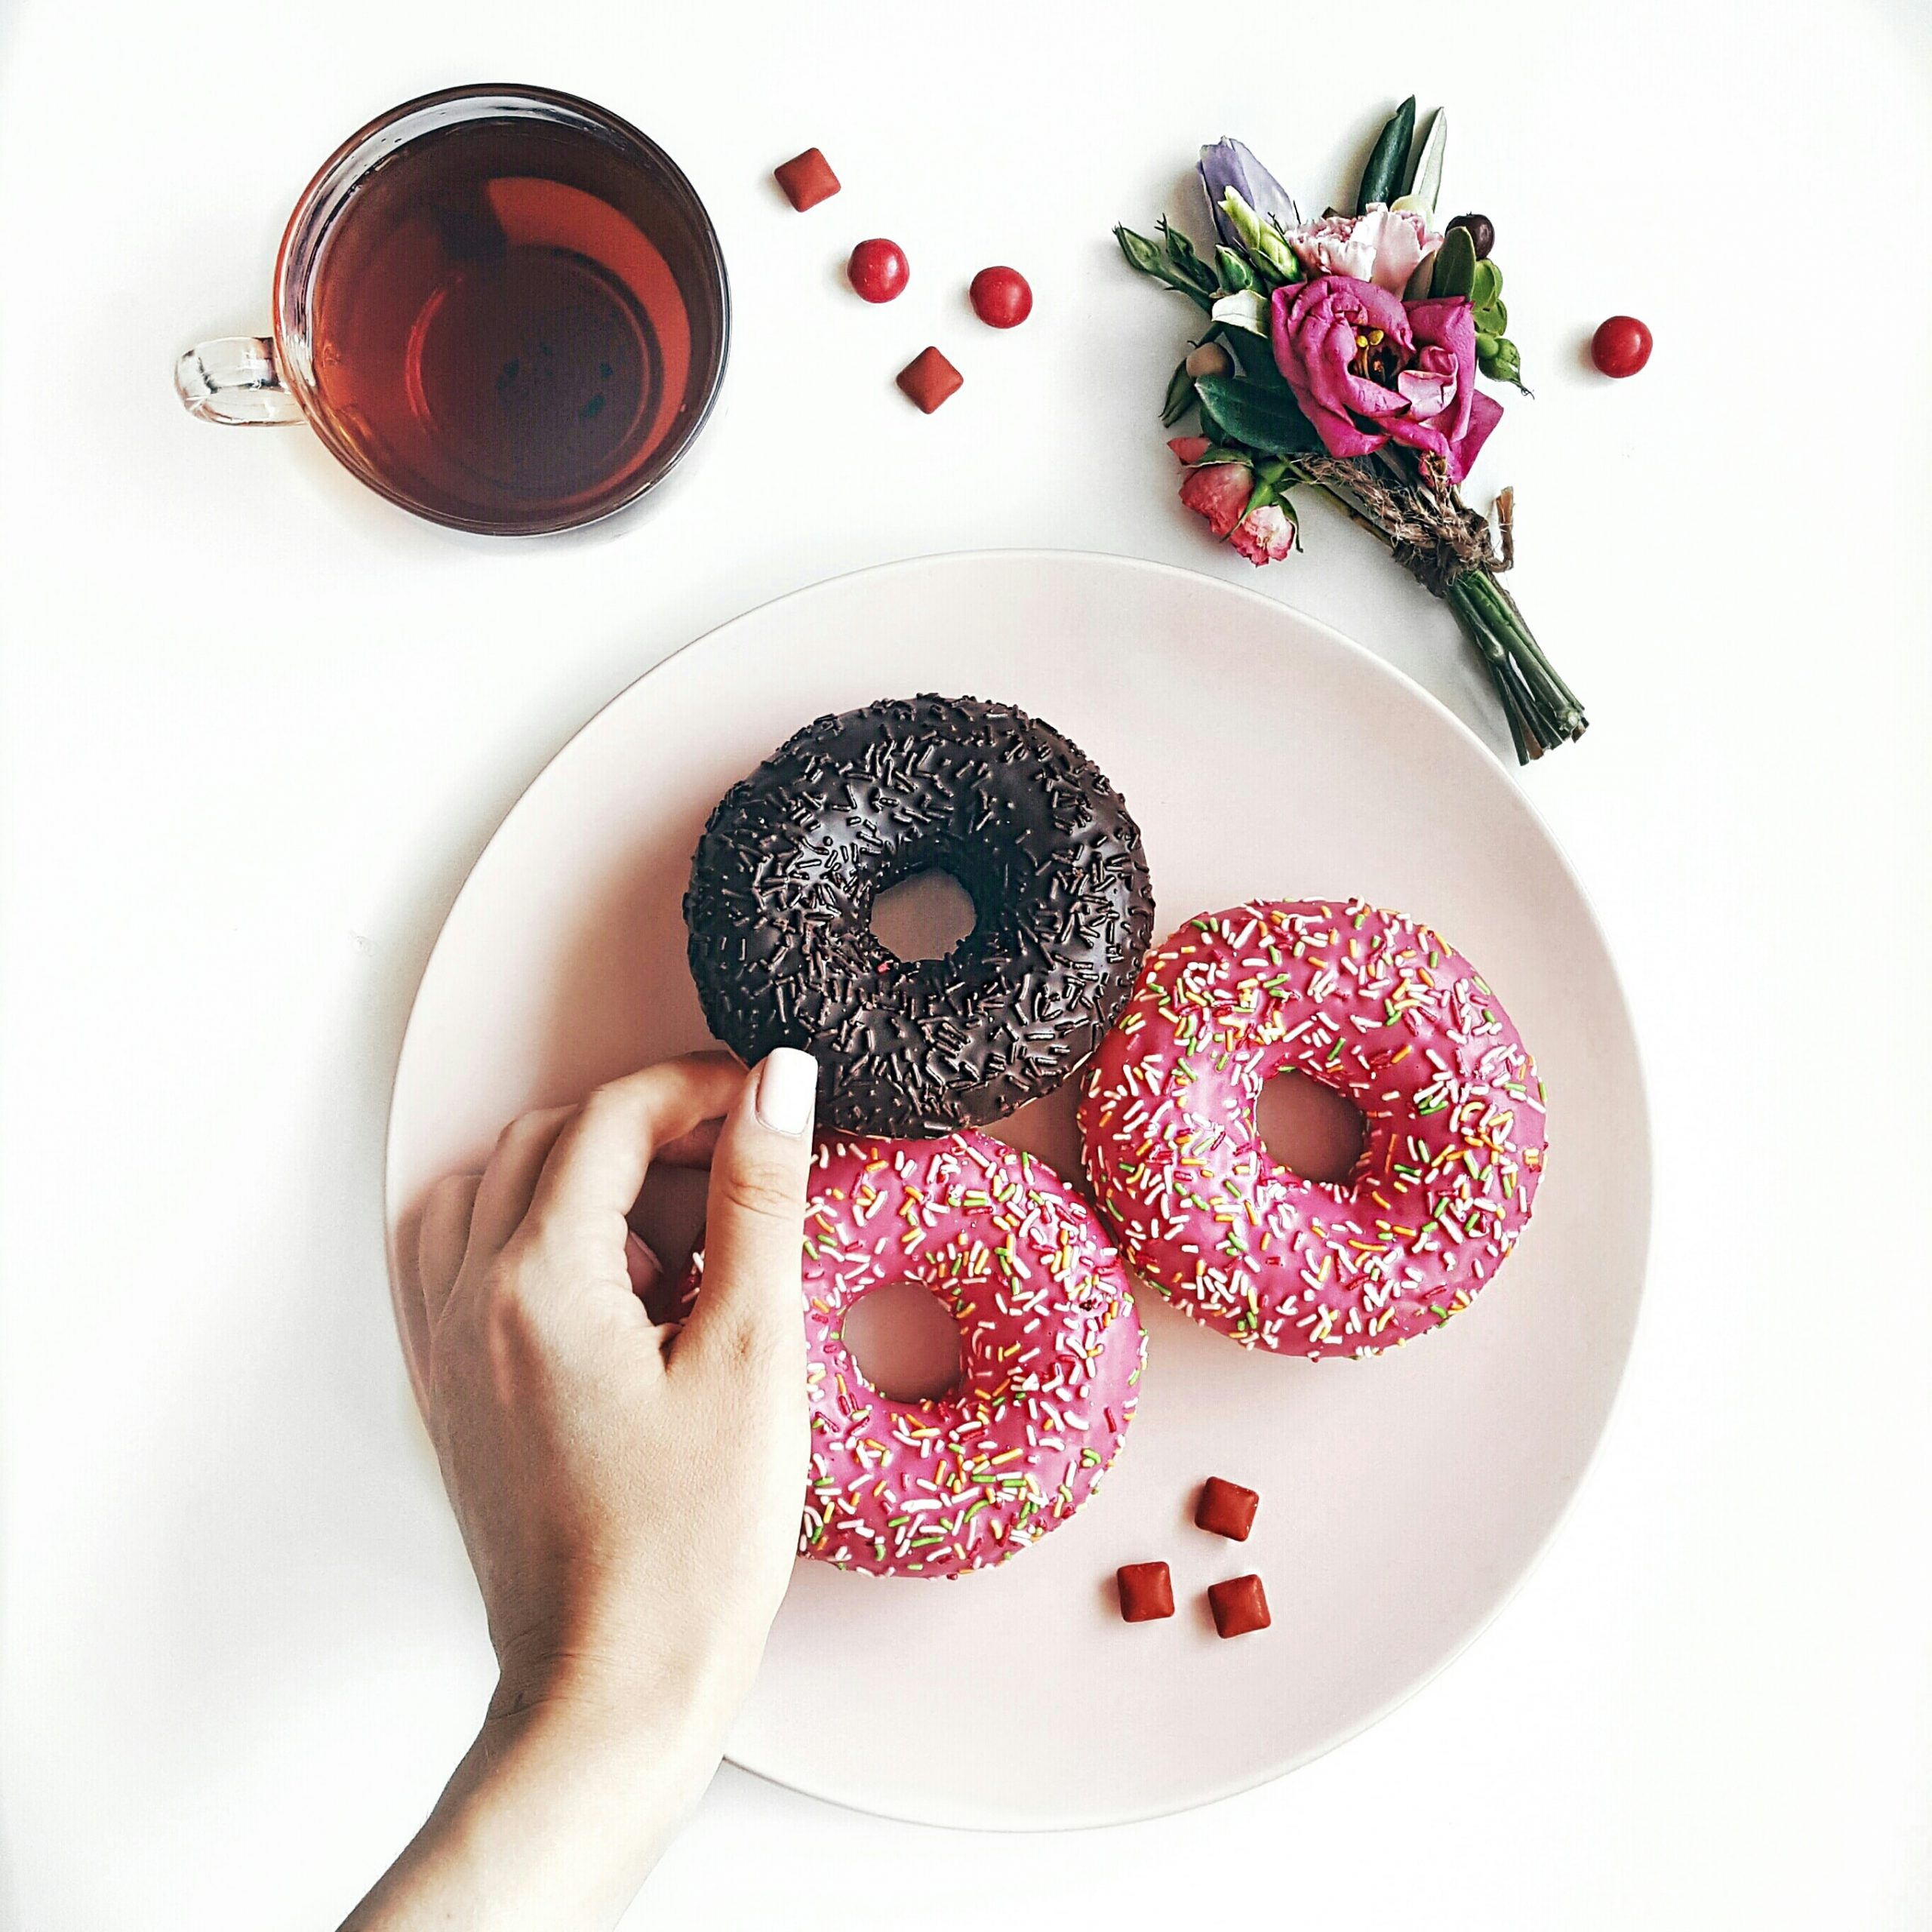 Why I Love Donuts